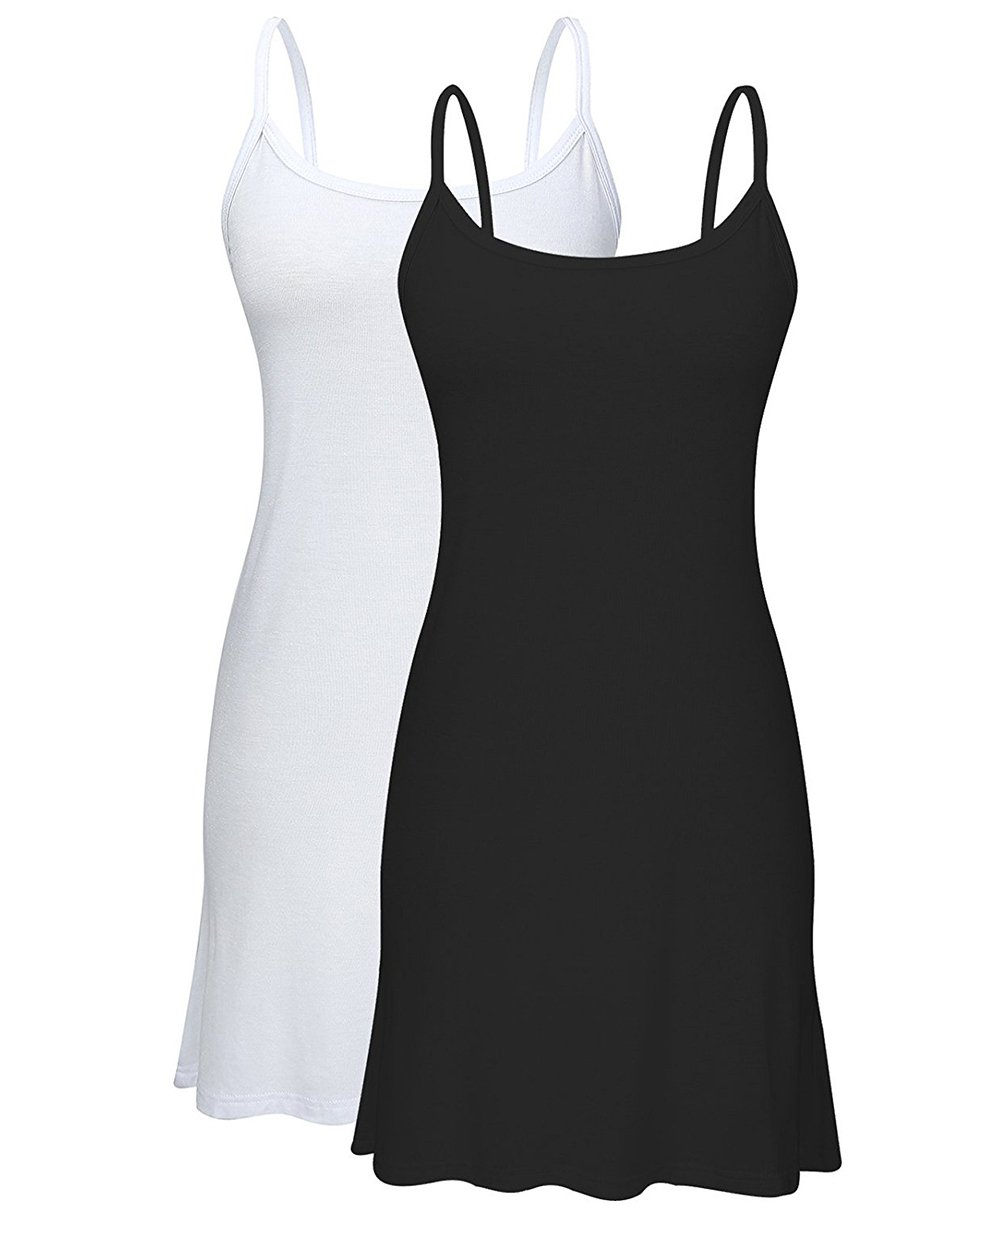 Zando Women Casual Plus Size Basic Solid Long Length Strap Tank Top Sleeveless Mini Dress Cami Dress T-Shirt Dress Tunic 2 Pack - Black White US 20-24 by Zando